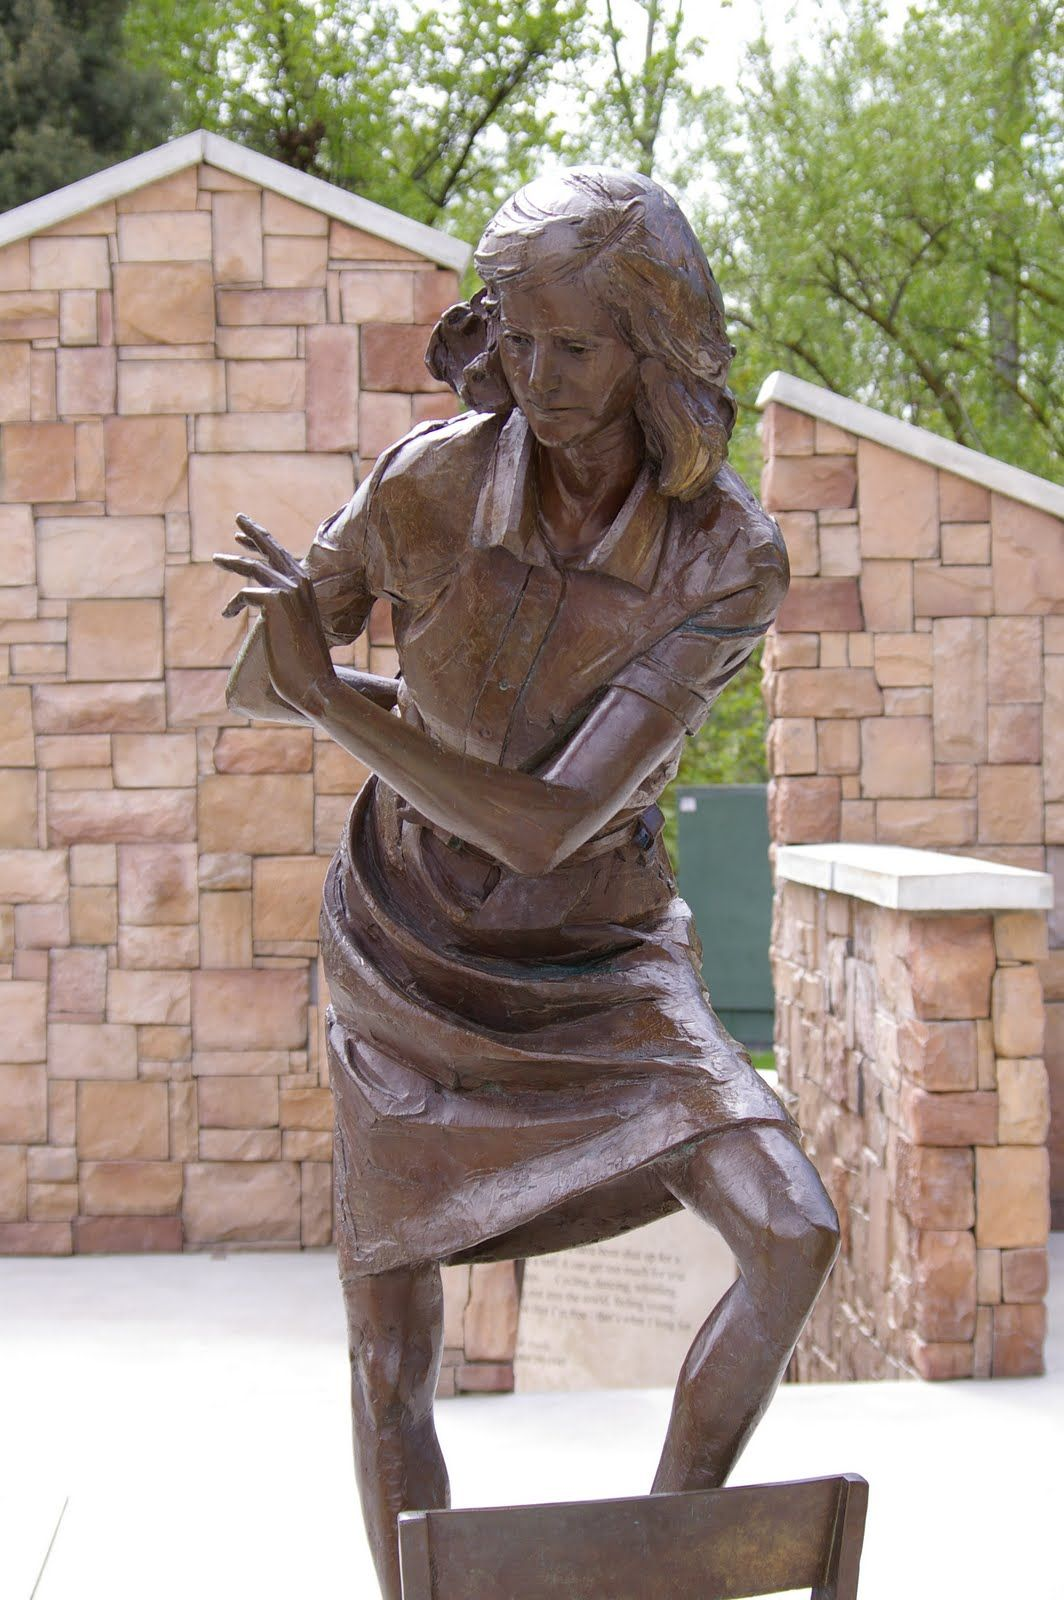 Image result for Anne Frank art sculpture